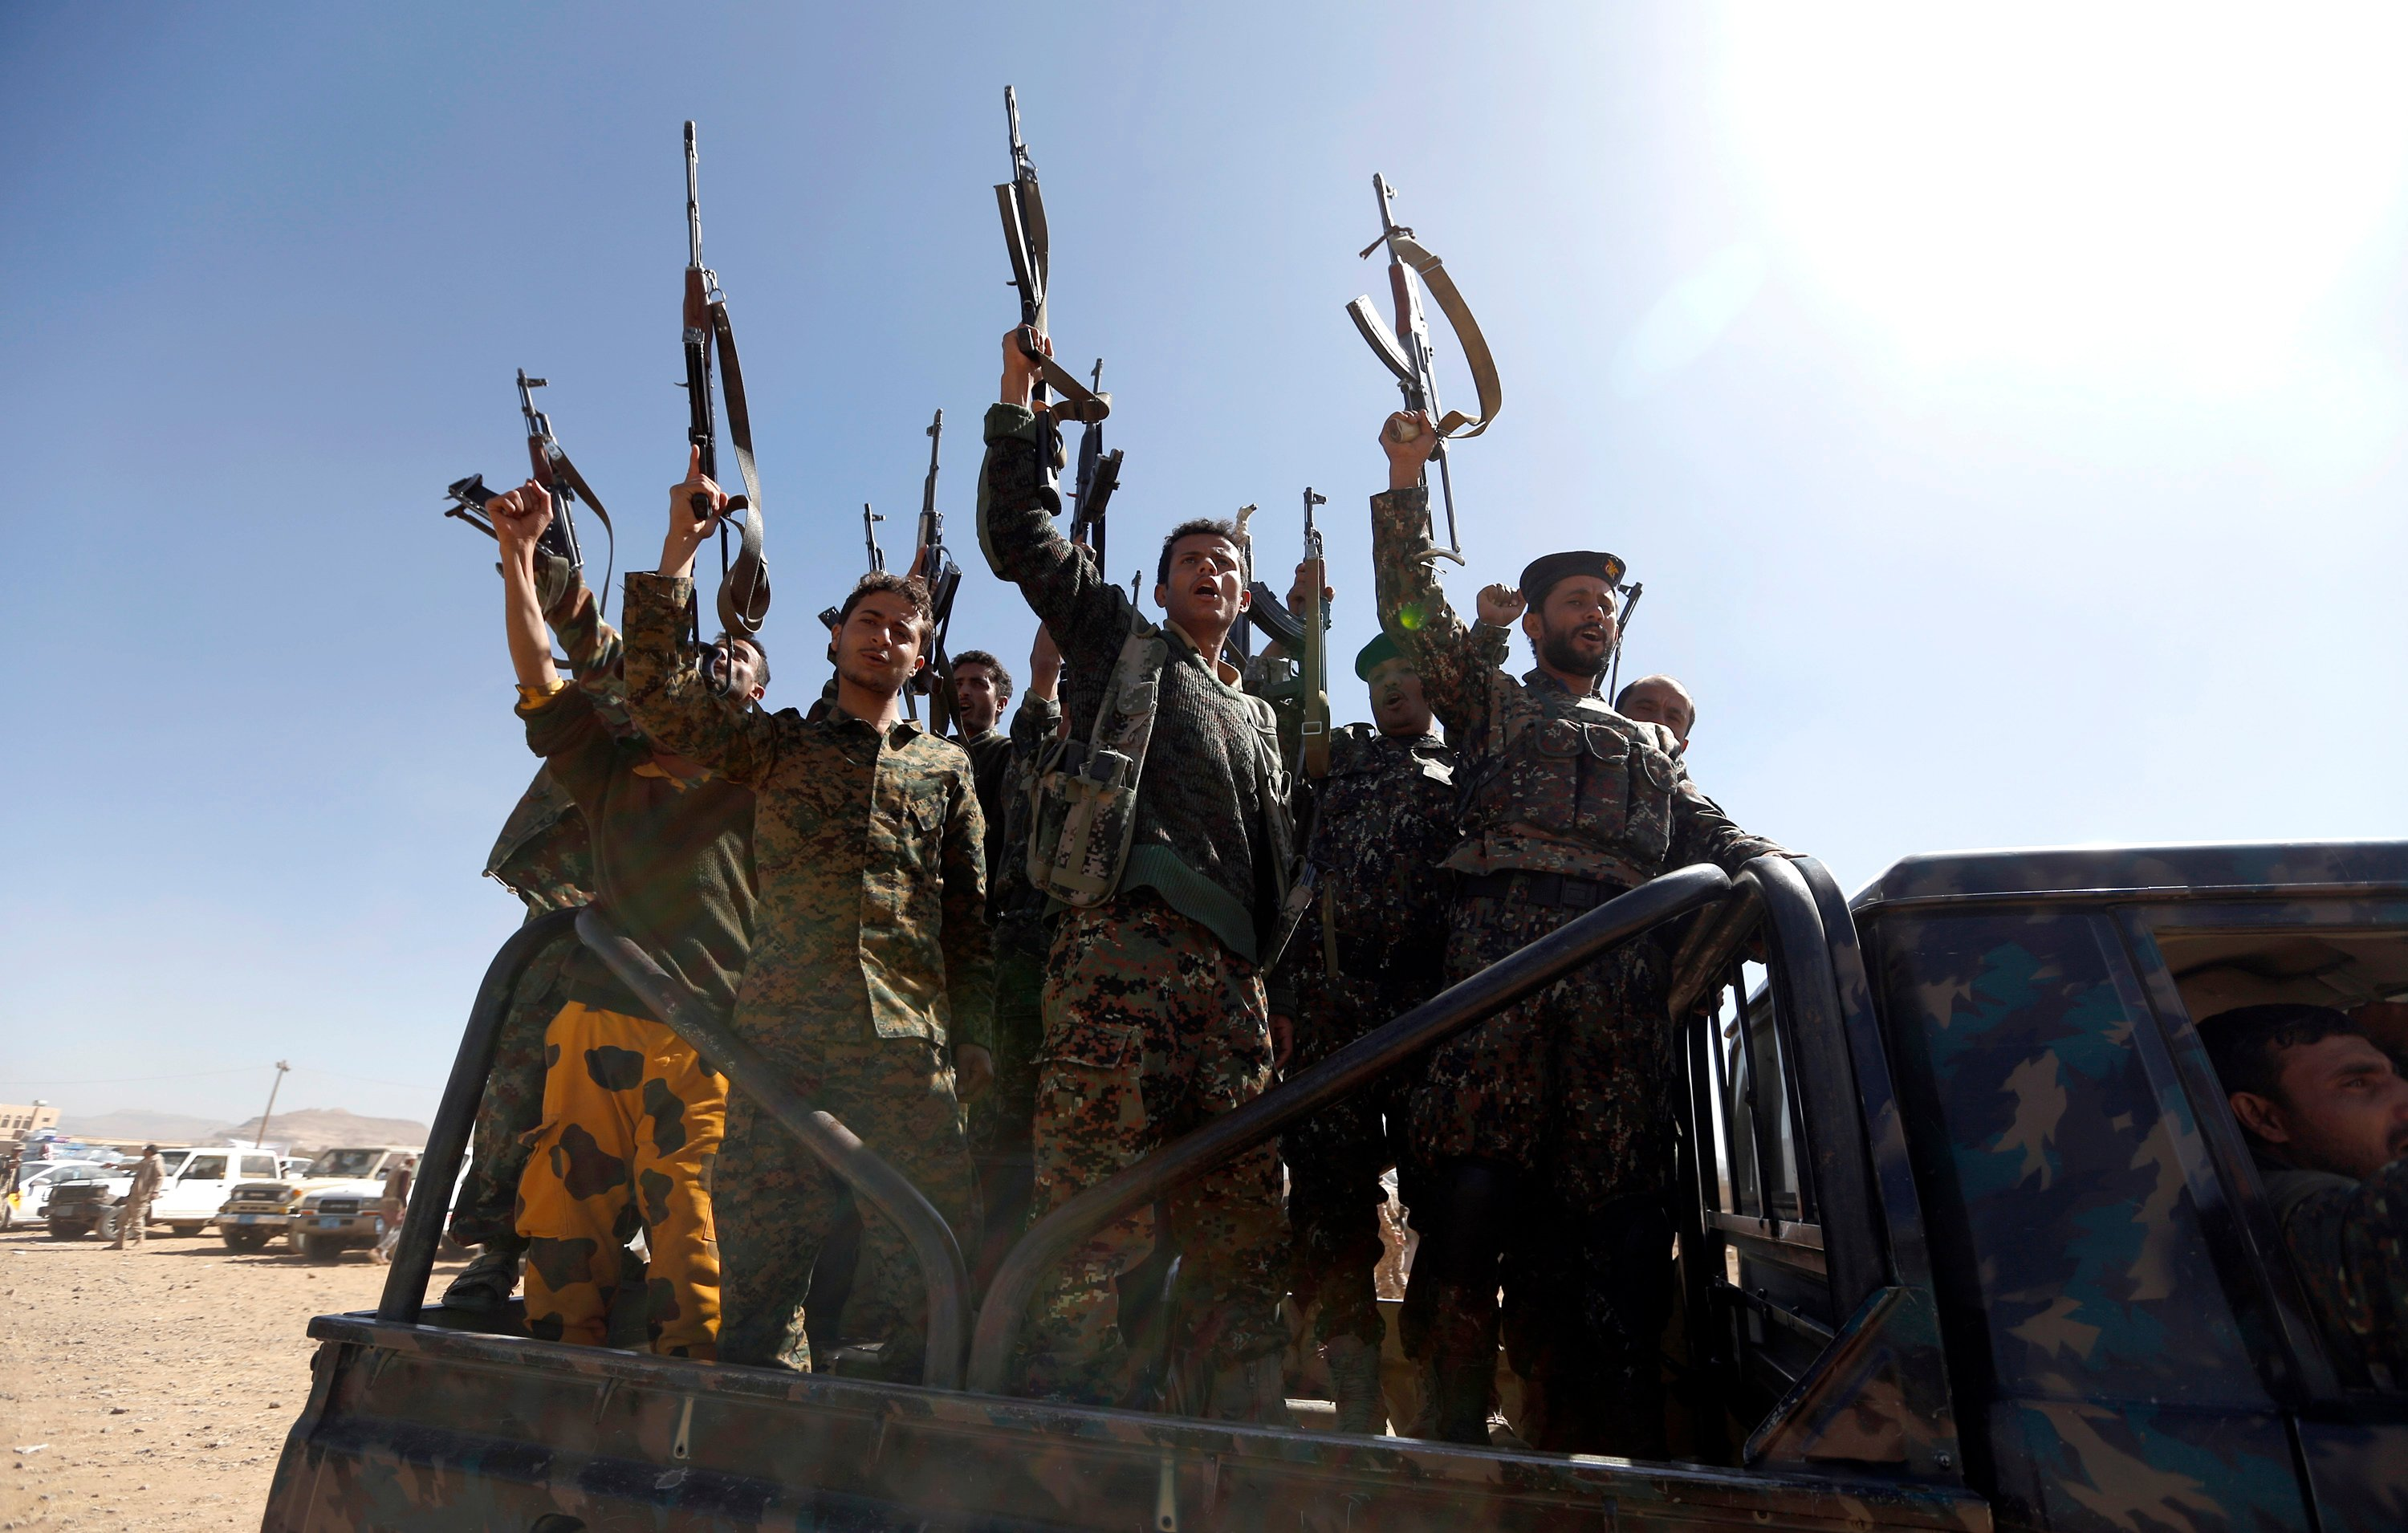 Newly recruited Houthi fighters chant slogans as they ride a military vehicle during a gathering in the capital Sanaa (AFP)